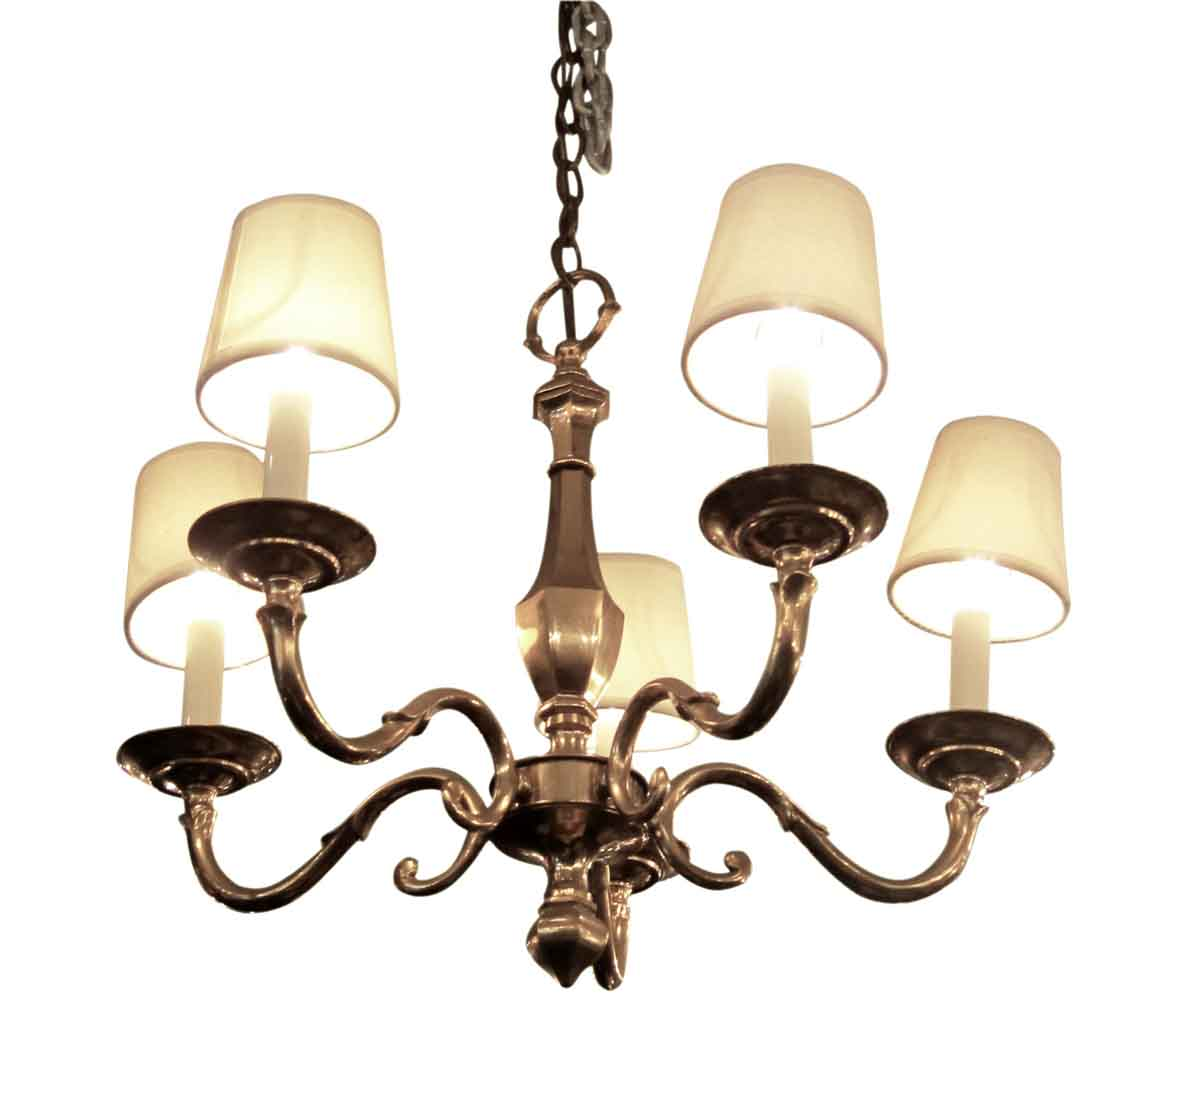 Four Arm Brass Chandelier with Shades | Olde Good Things